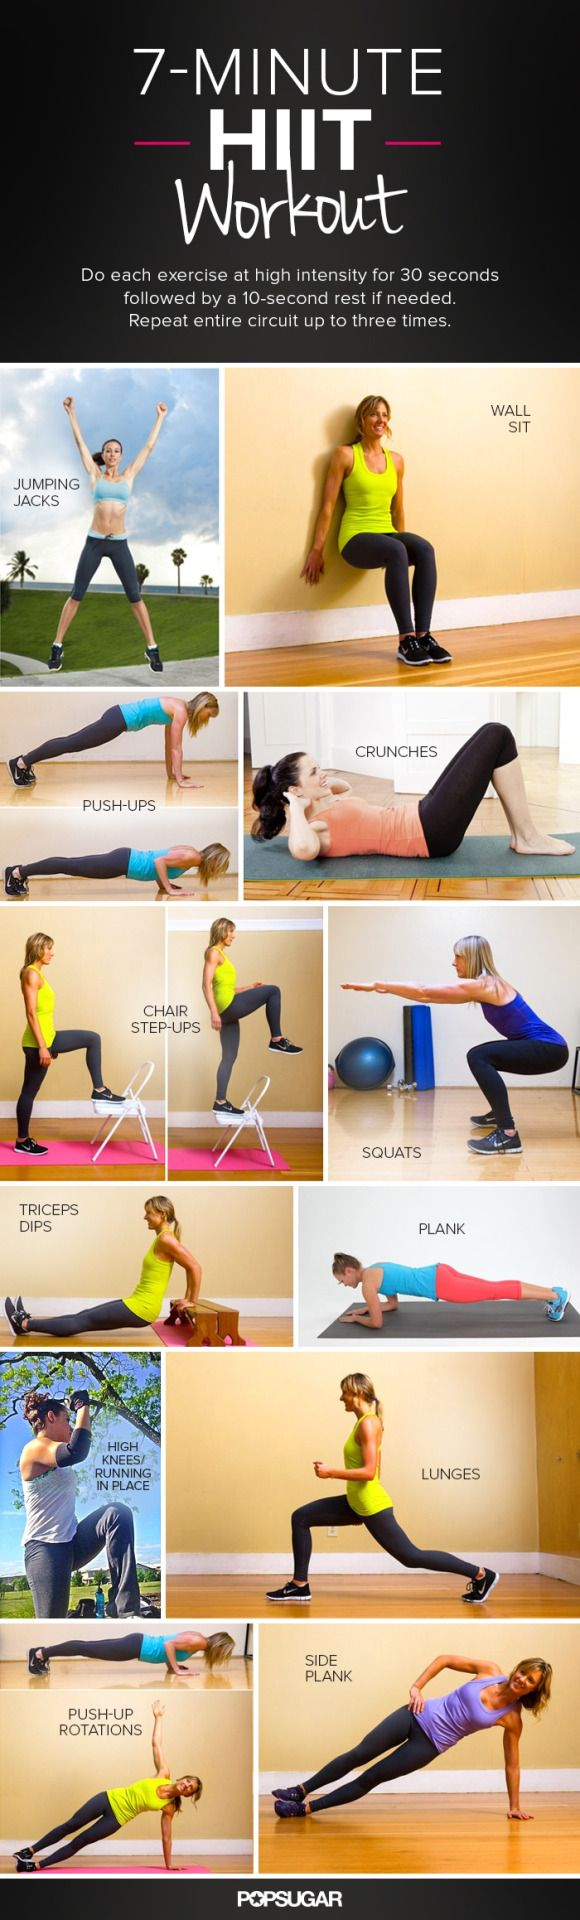 sierrafit:  A workout you can do at home!